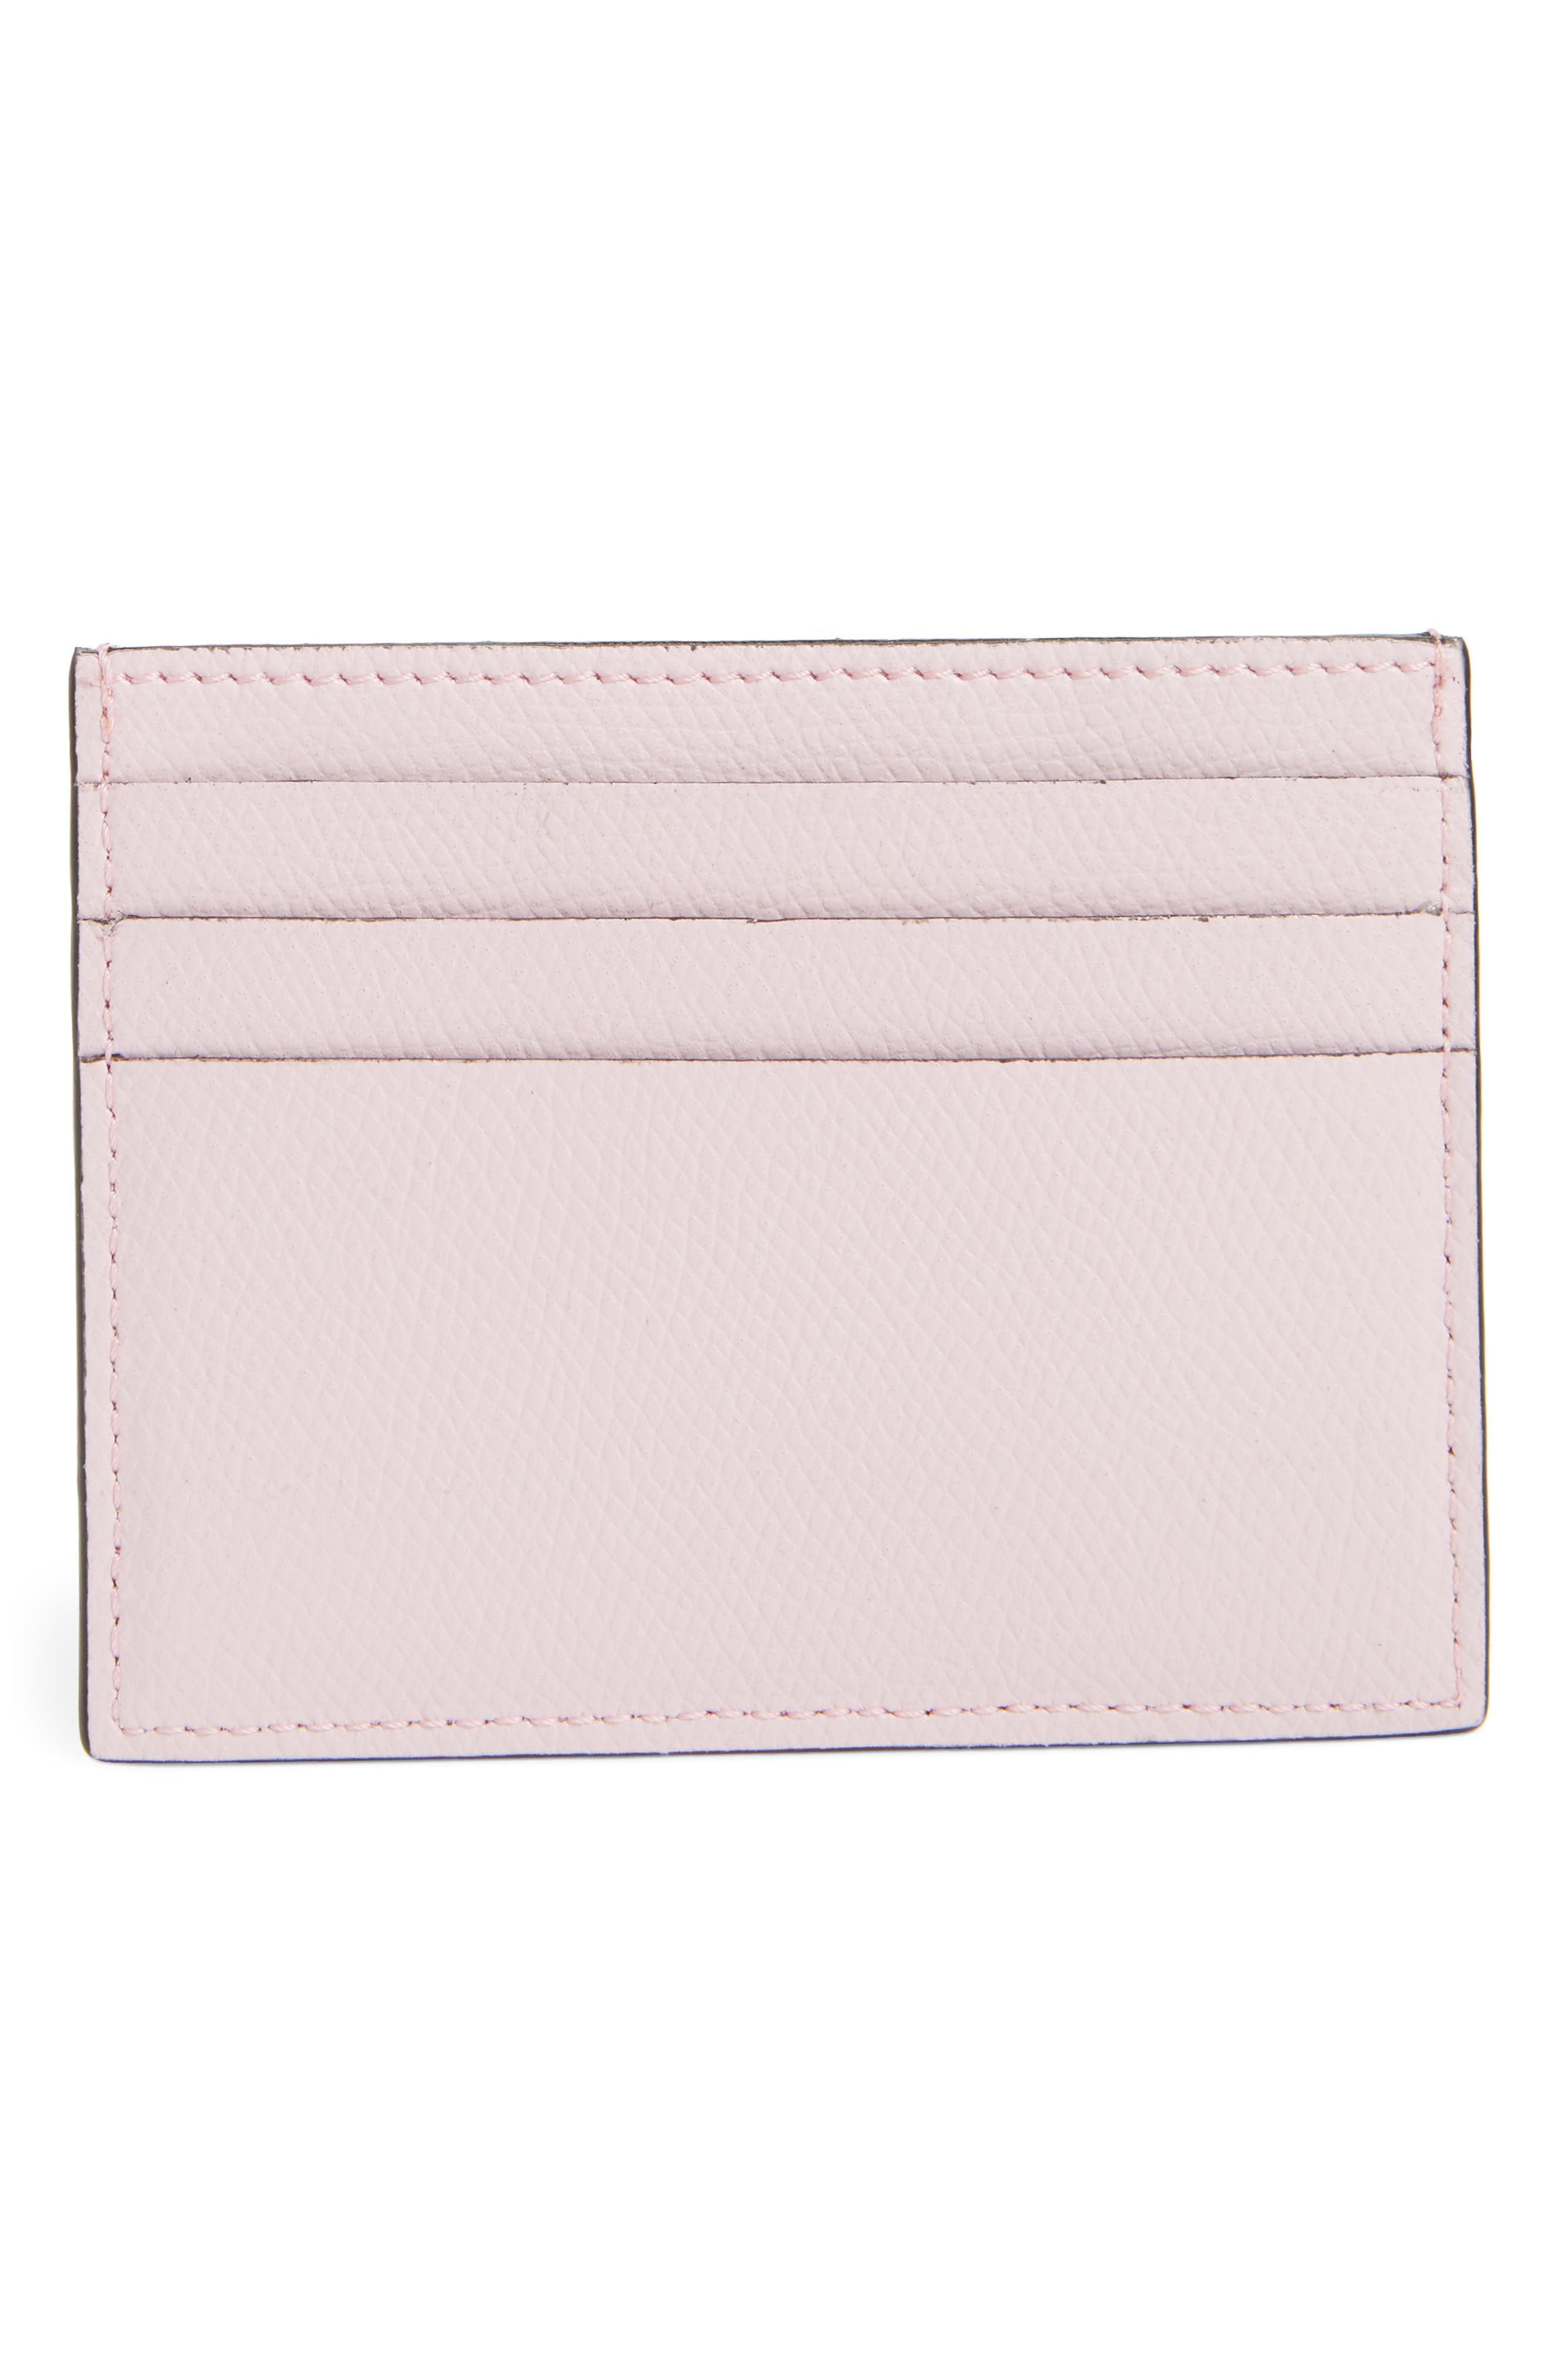 Leather Card Case,                             Alternate thumbnail 3, color,                             PEONY/ ORO SOFT